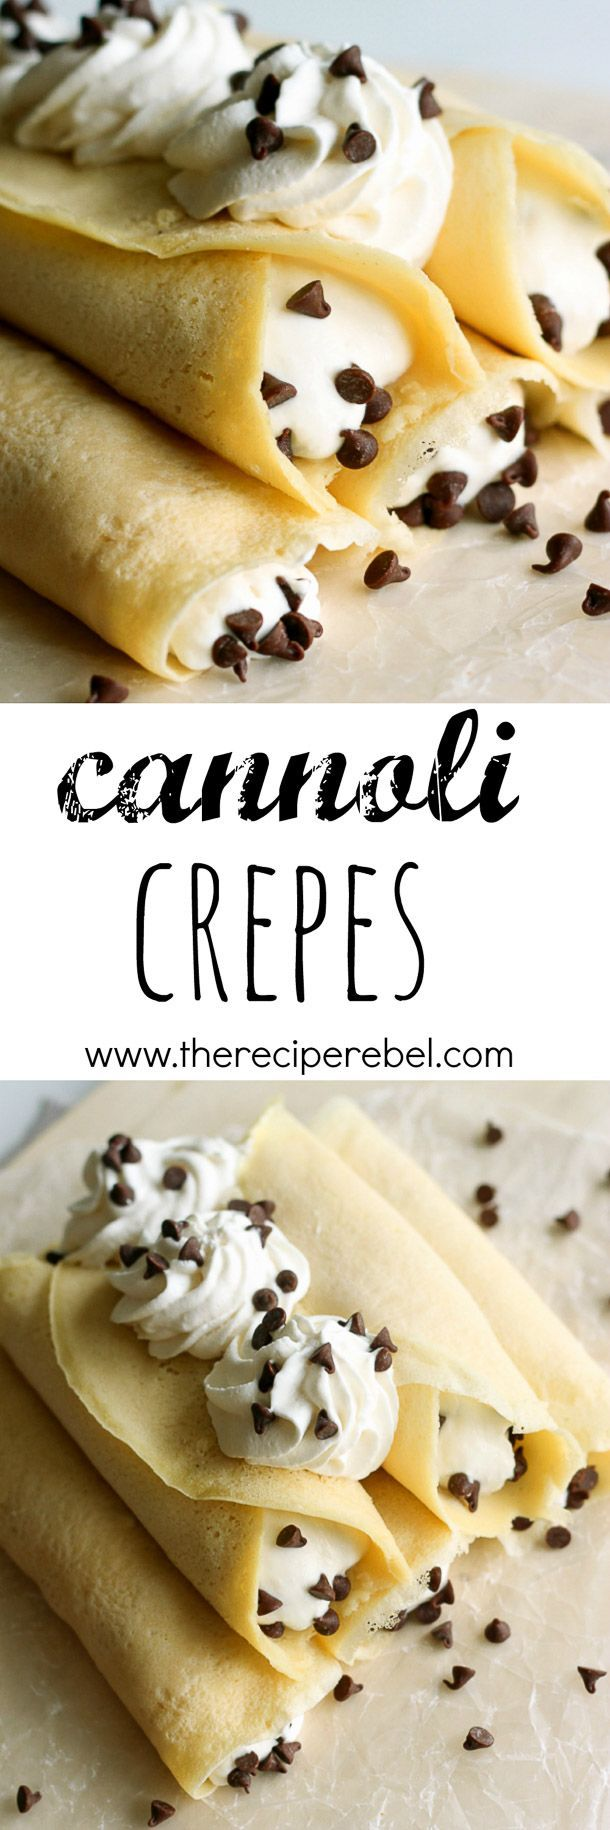 Cannoli Crepes: Soft homemade crepes filled with sweet ricotta cream and chocolate chips, topped with whipped cream and more chocolate chips. A breakfast version of an Italian favorite! www.thereciperebe...